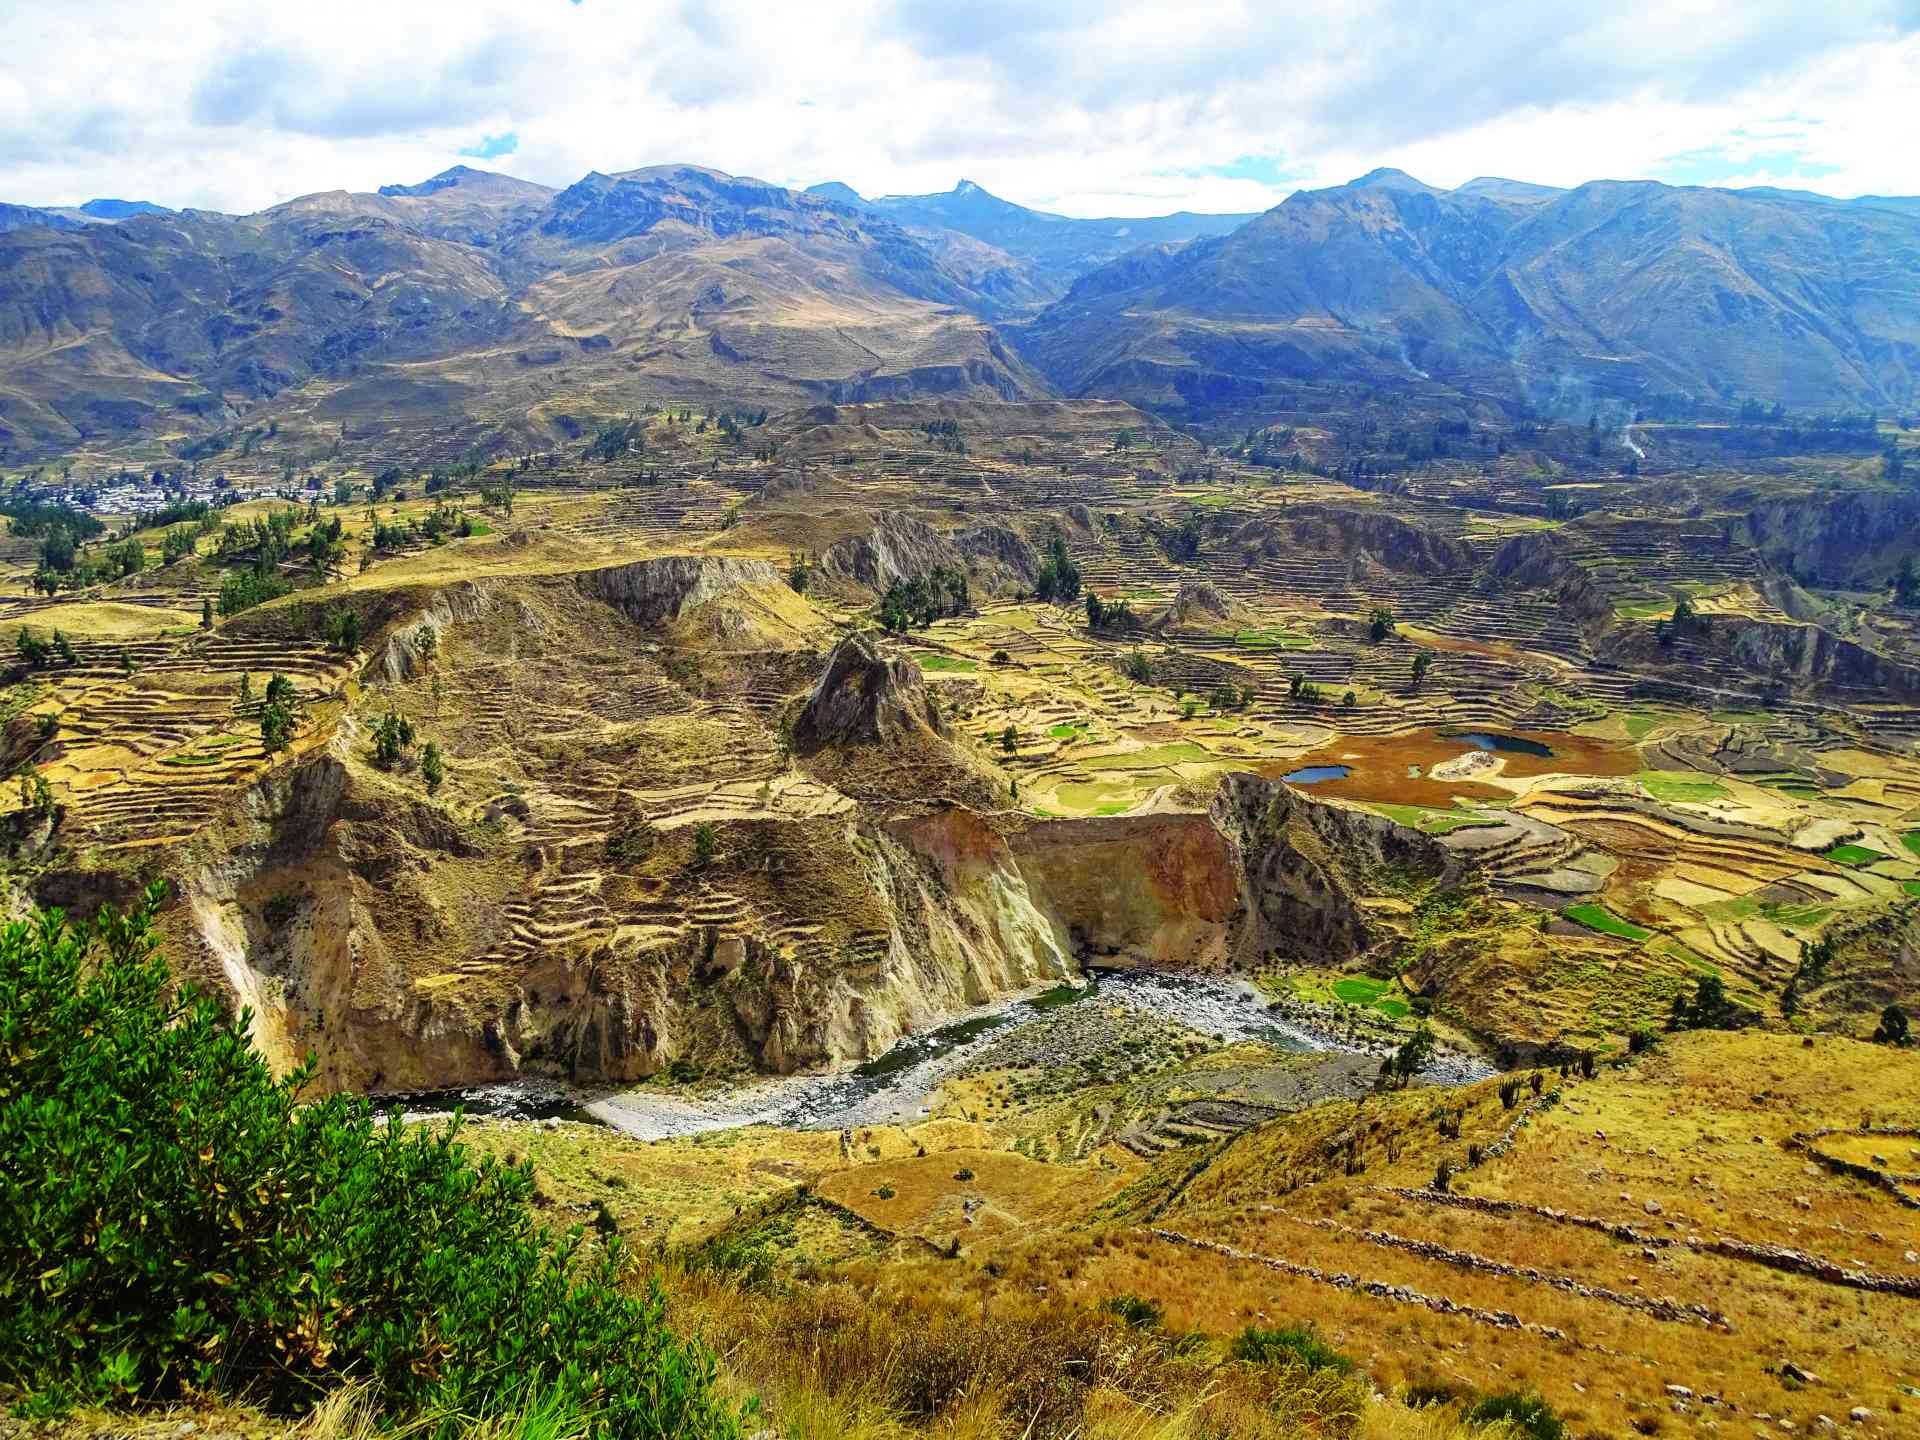 Colca Canyon, Peru by Coltur